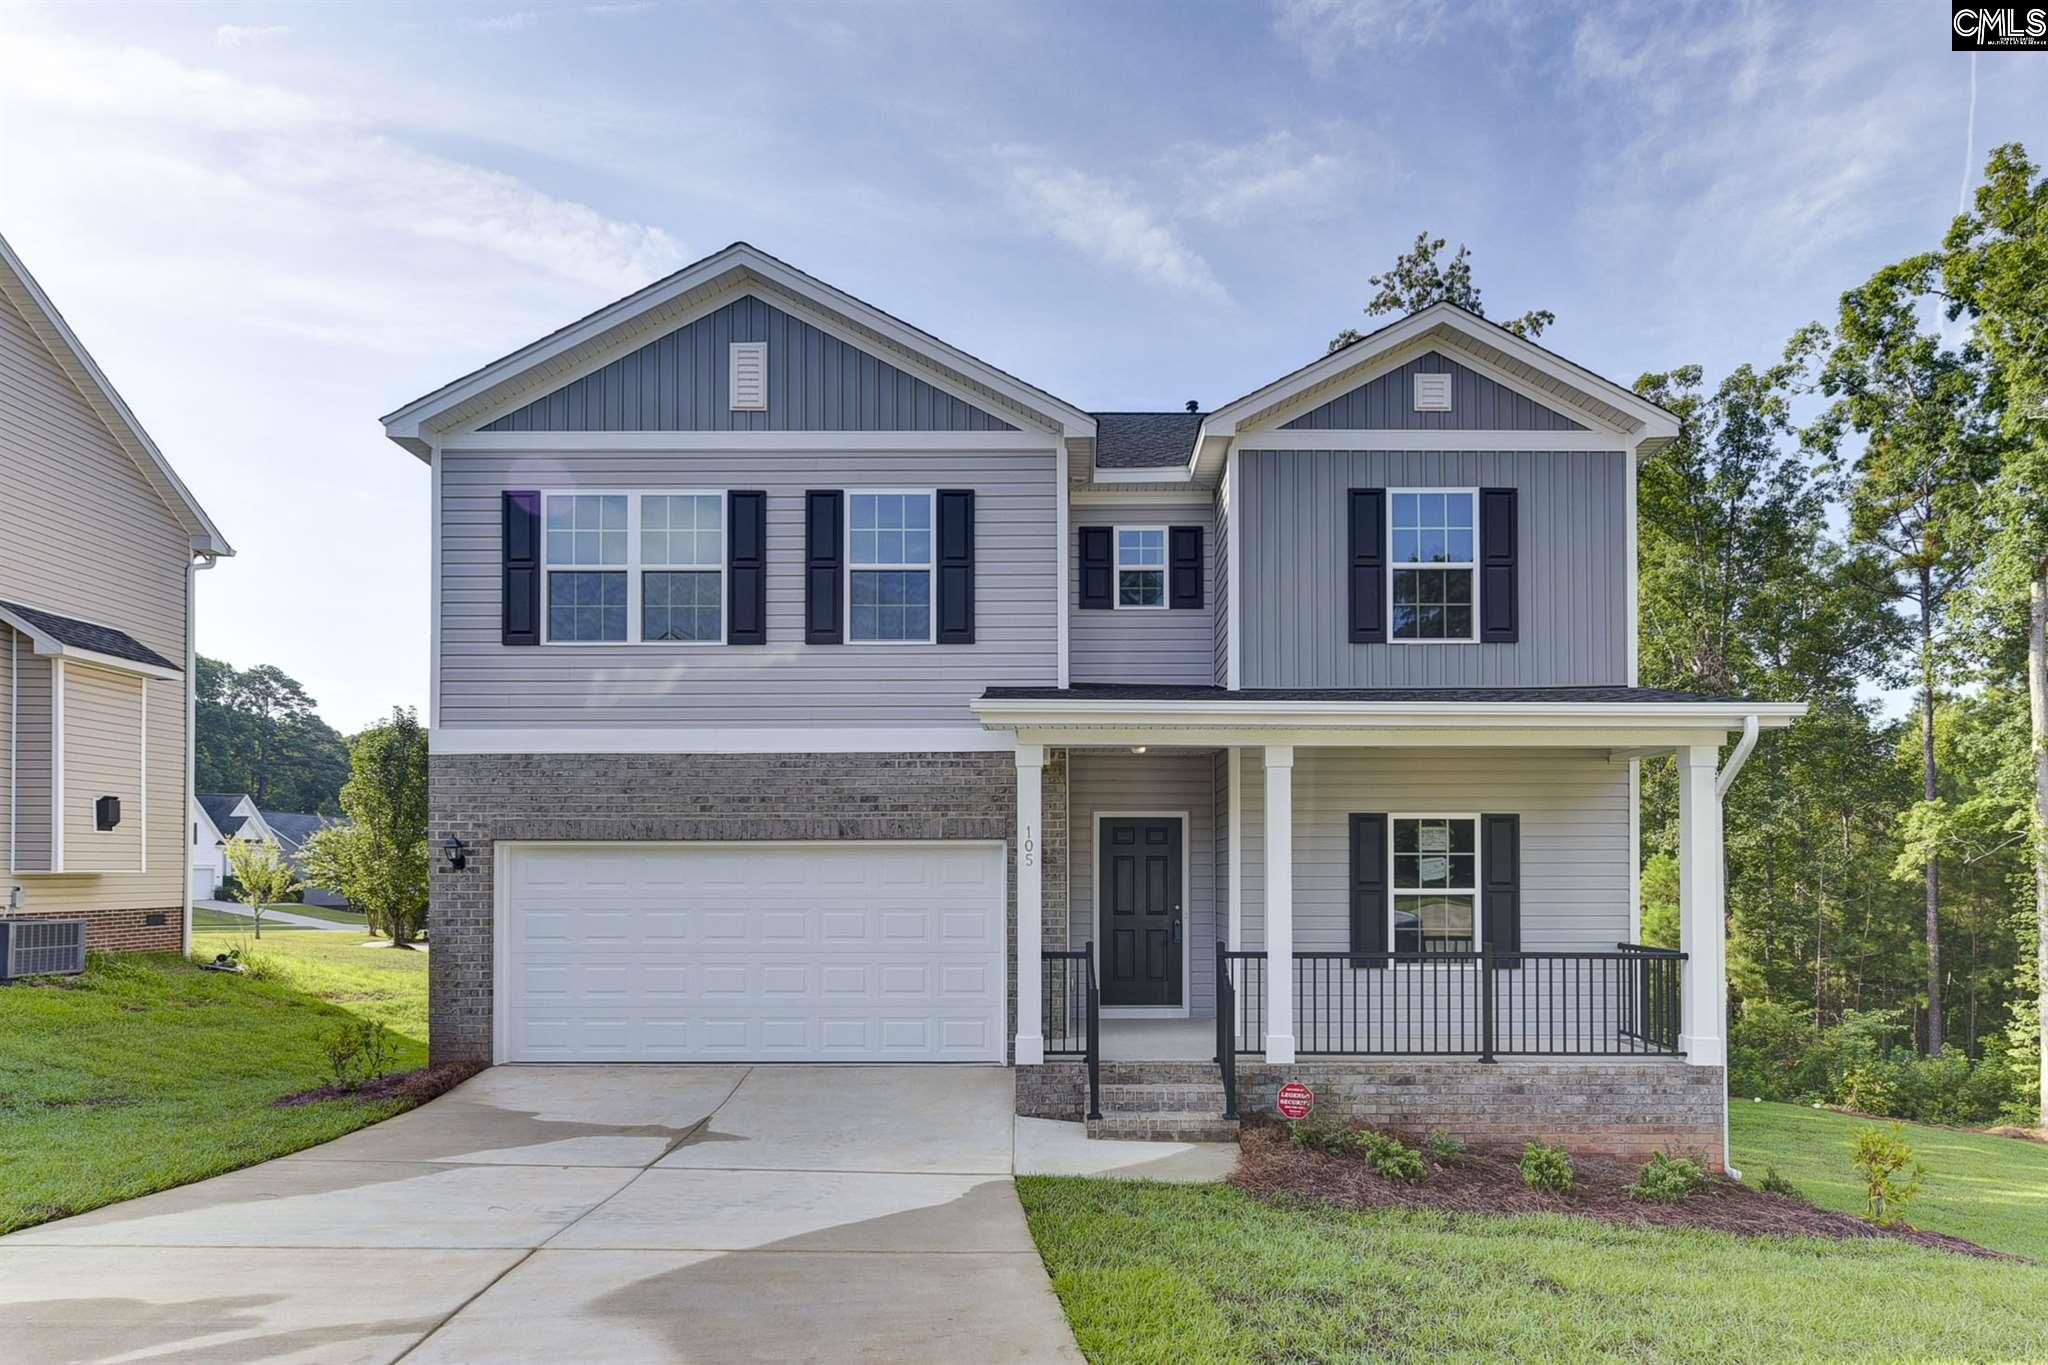 105 Saint Helena Lexington, SC 29072